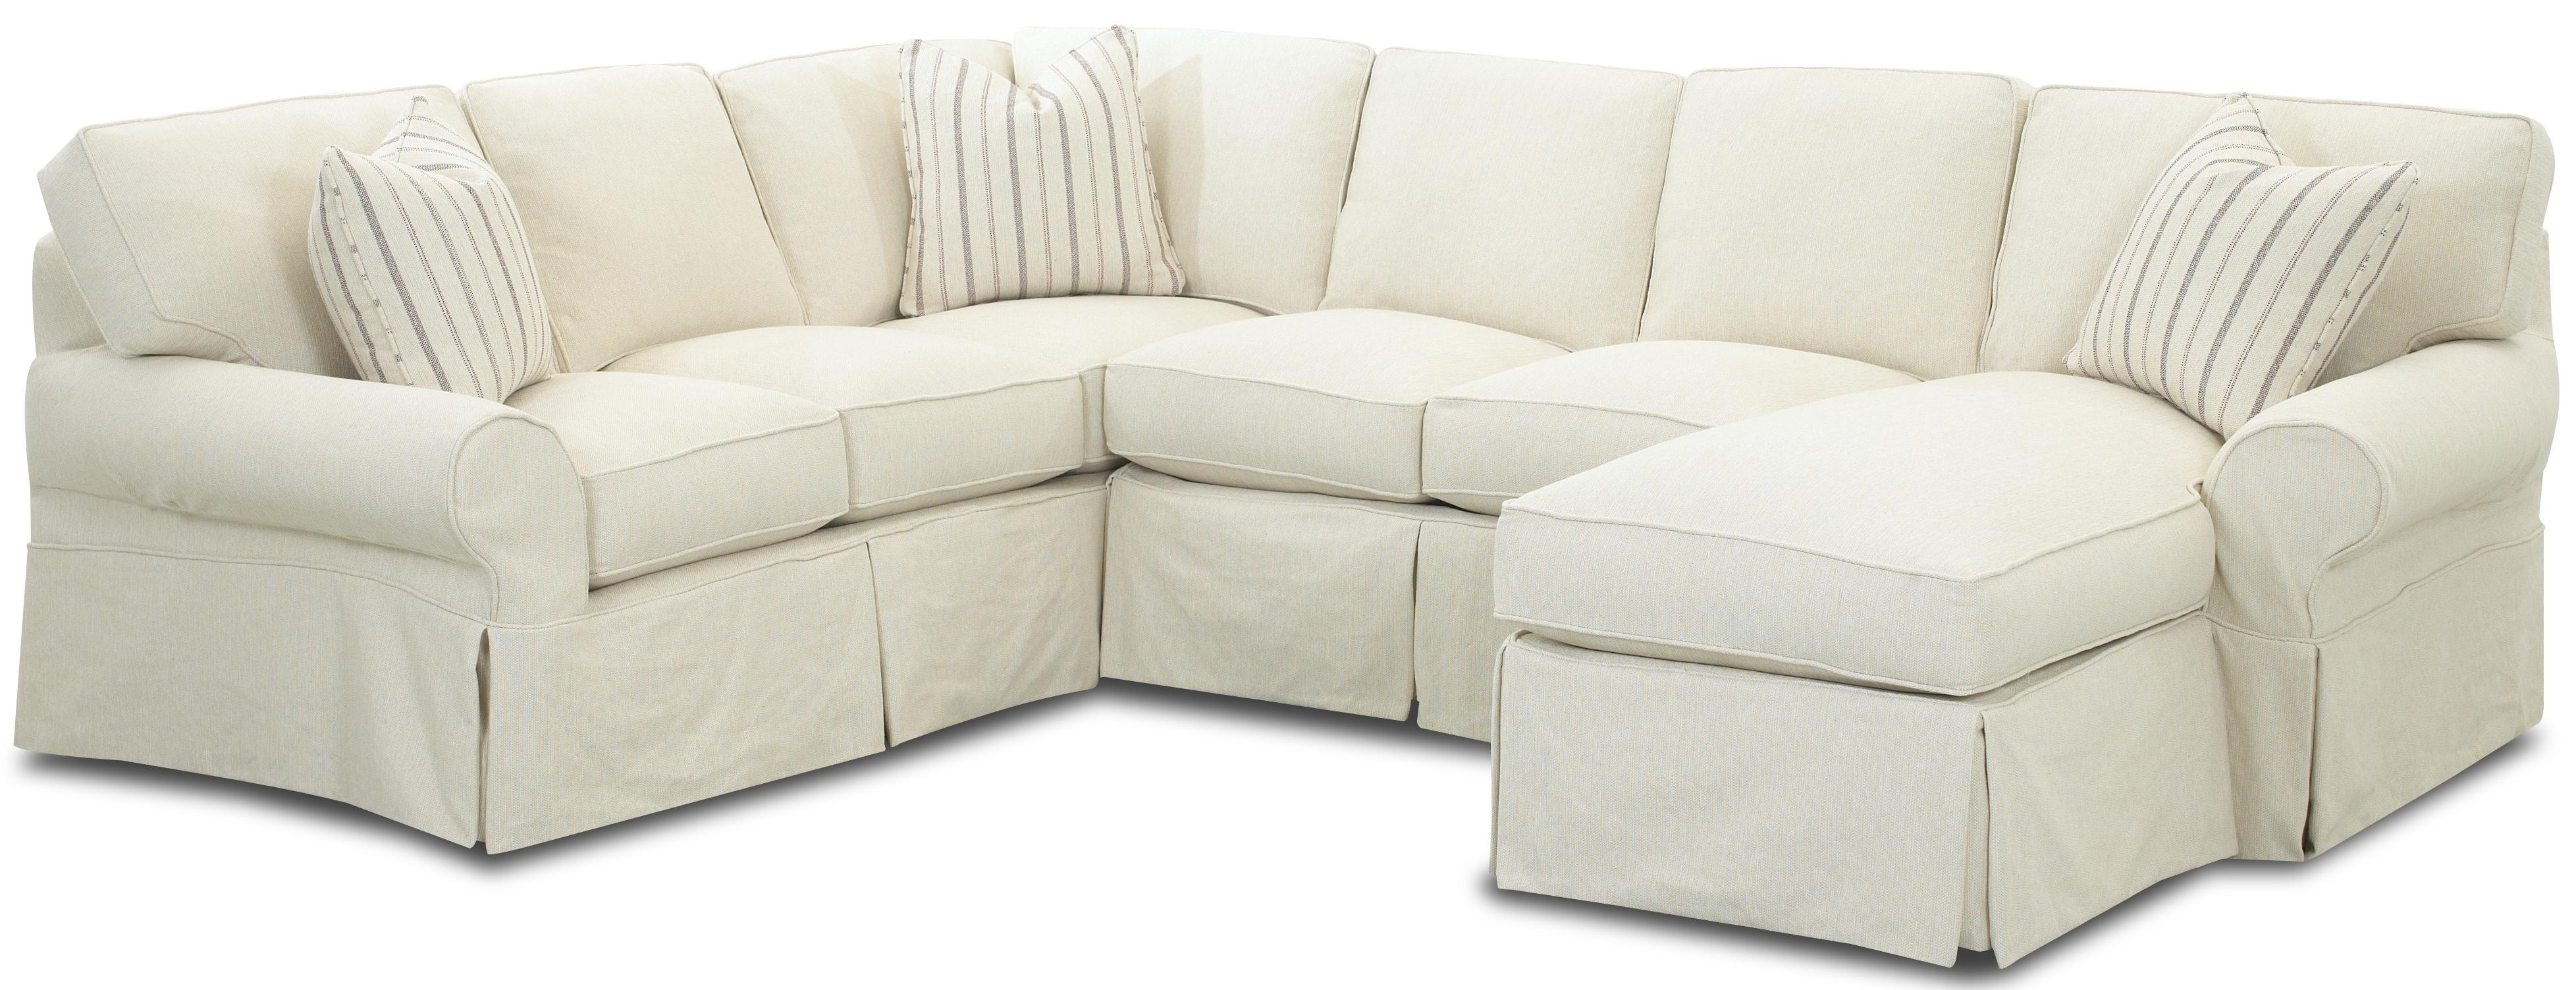 Most Up To Date Best Slipcover Sectional Sofa With Chaise 75 In Office Sofa Ideas With Regard To Slipcovers For Sectional Sofas With Chaise (View 2 of 15)